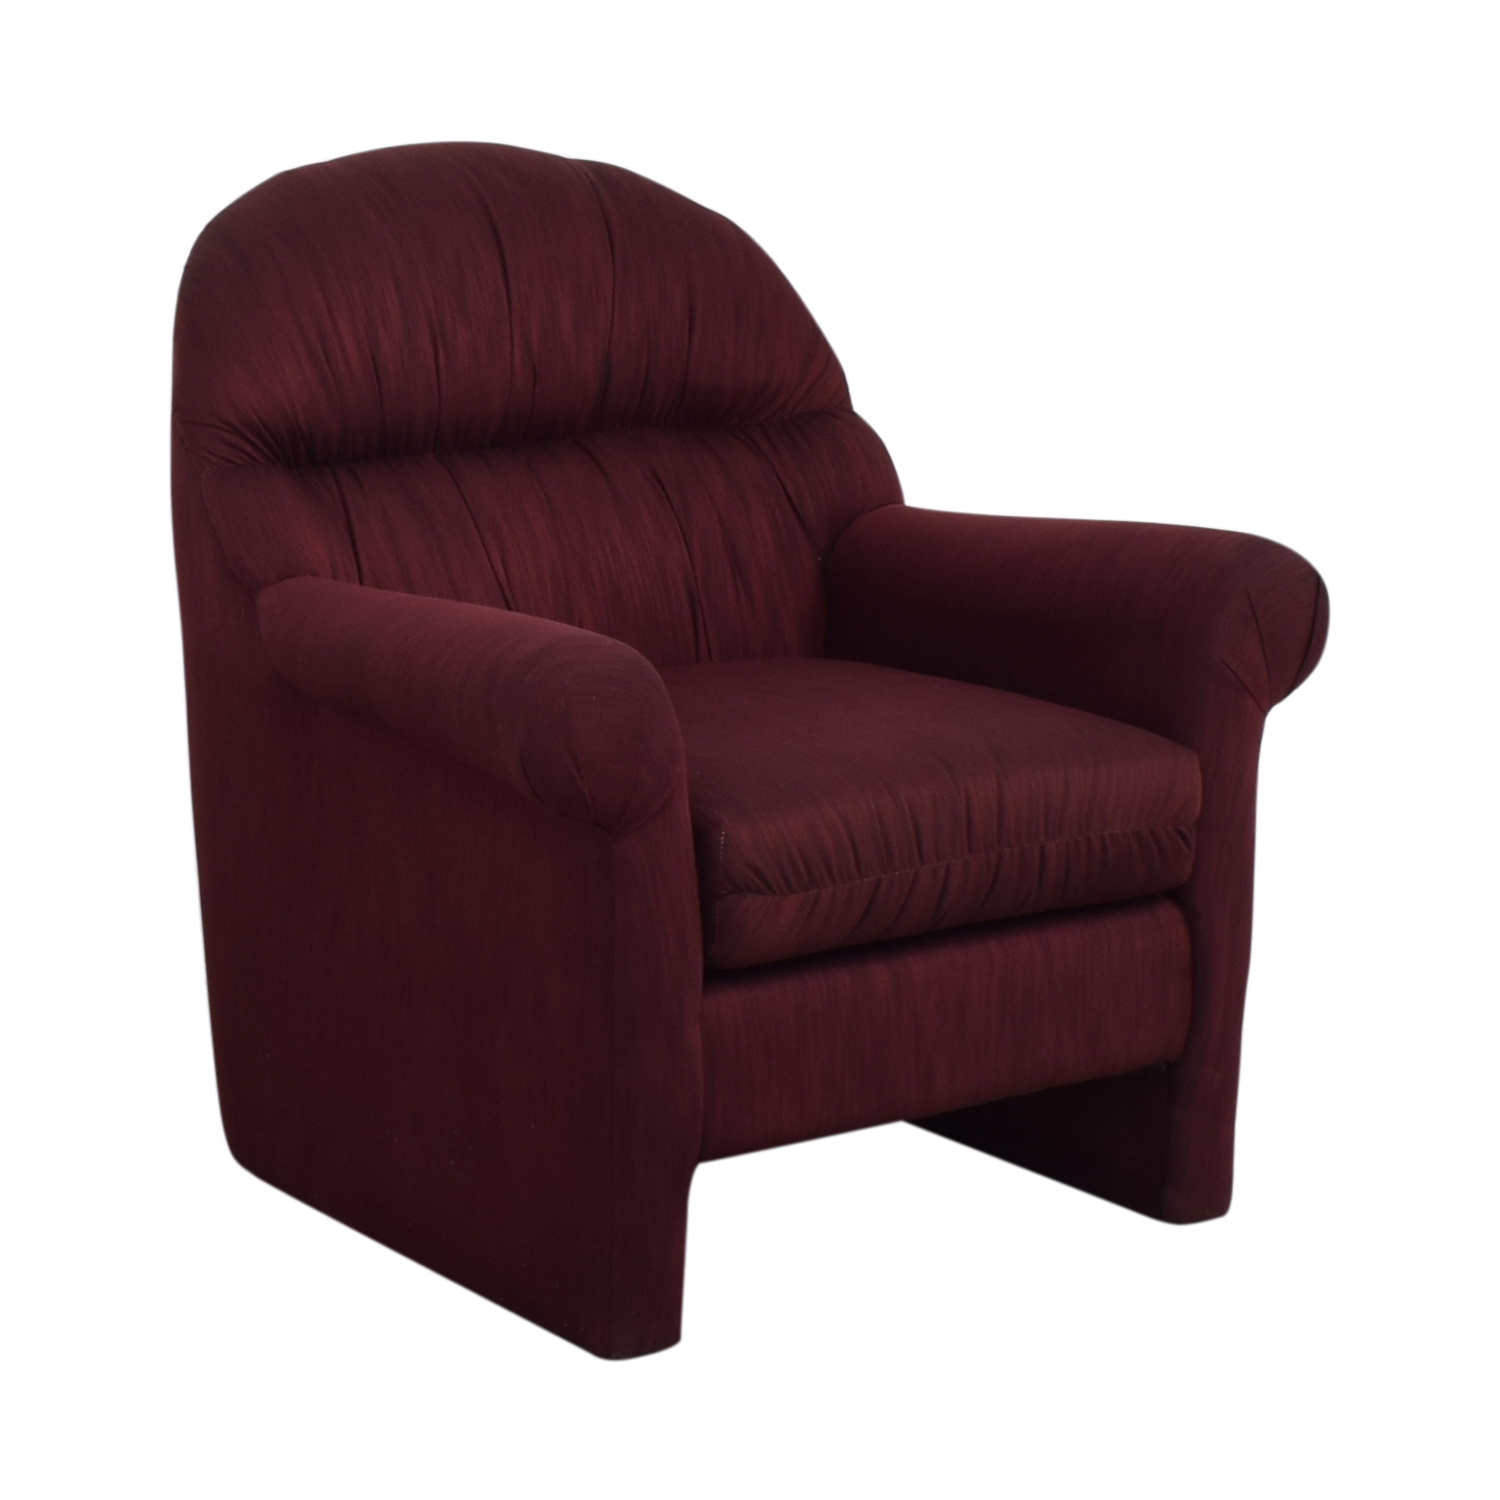 buy Jennifer Furniture Burgundy Accent Chair Jennifer Furniture Accent Chairs